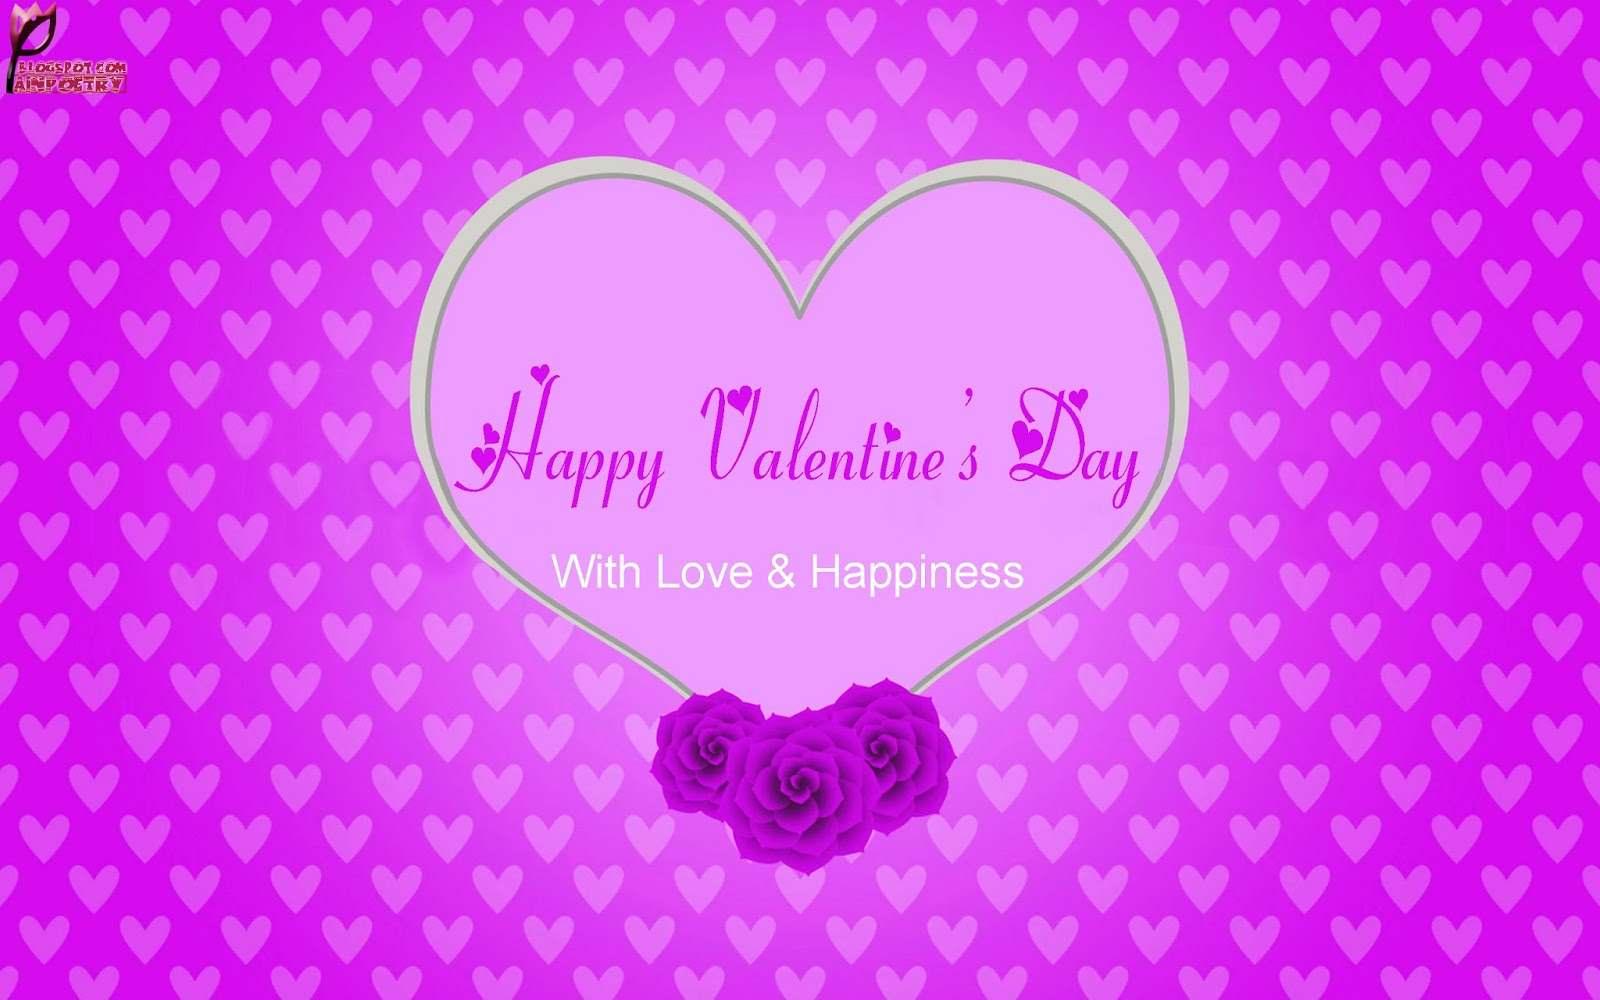 Happy-Valentines-Day-Wishes Wallpaper-With-Wishes-Image-HD-Wide